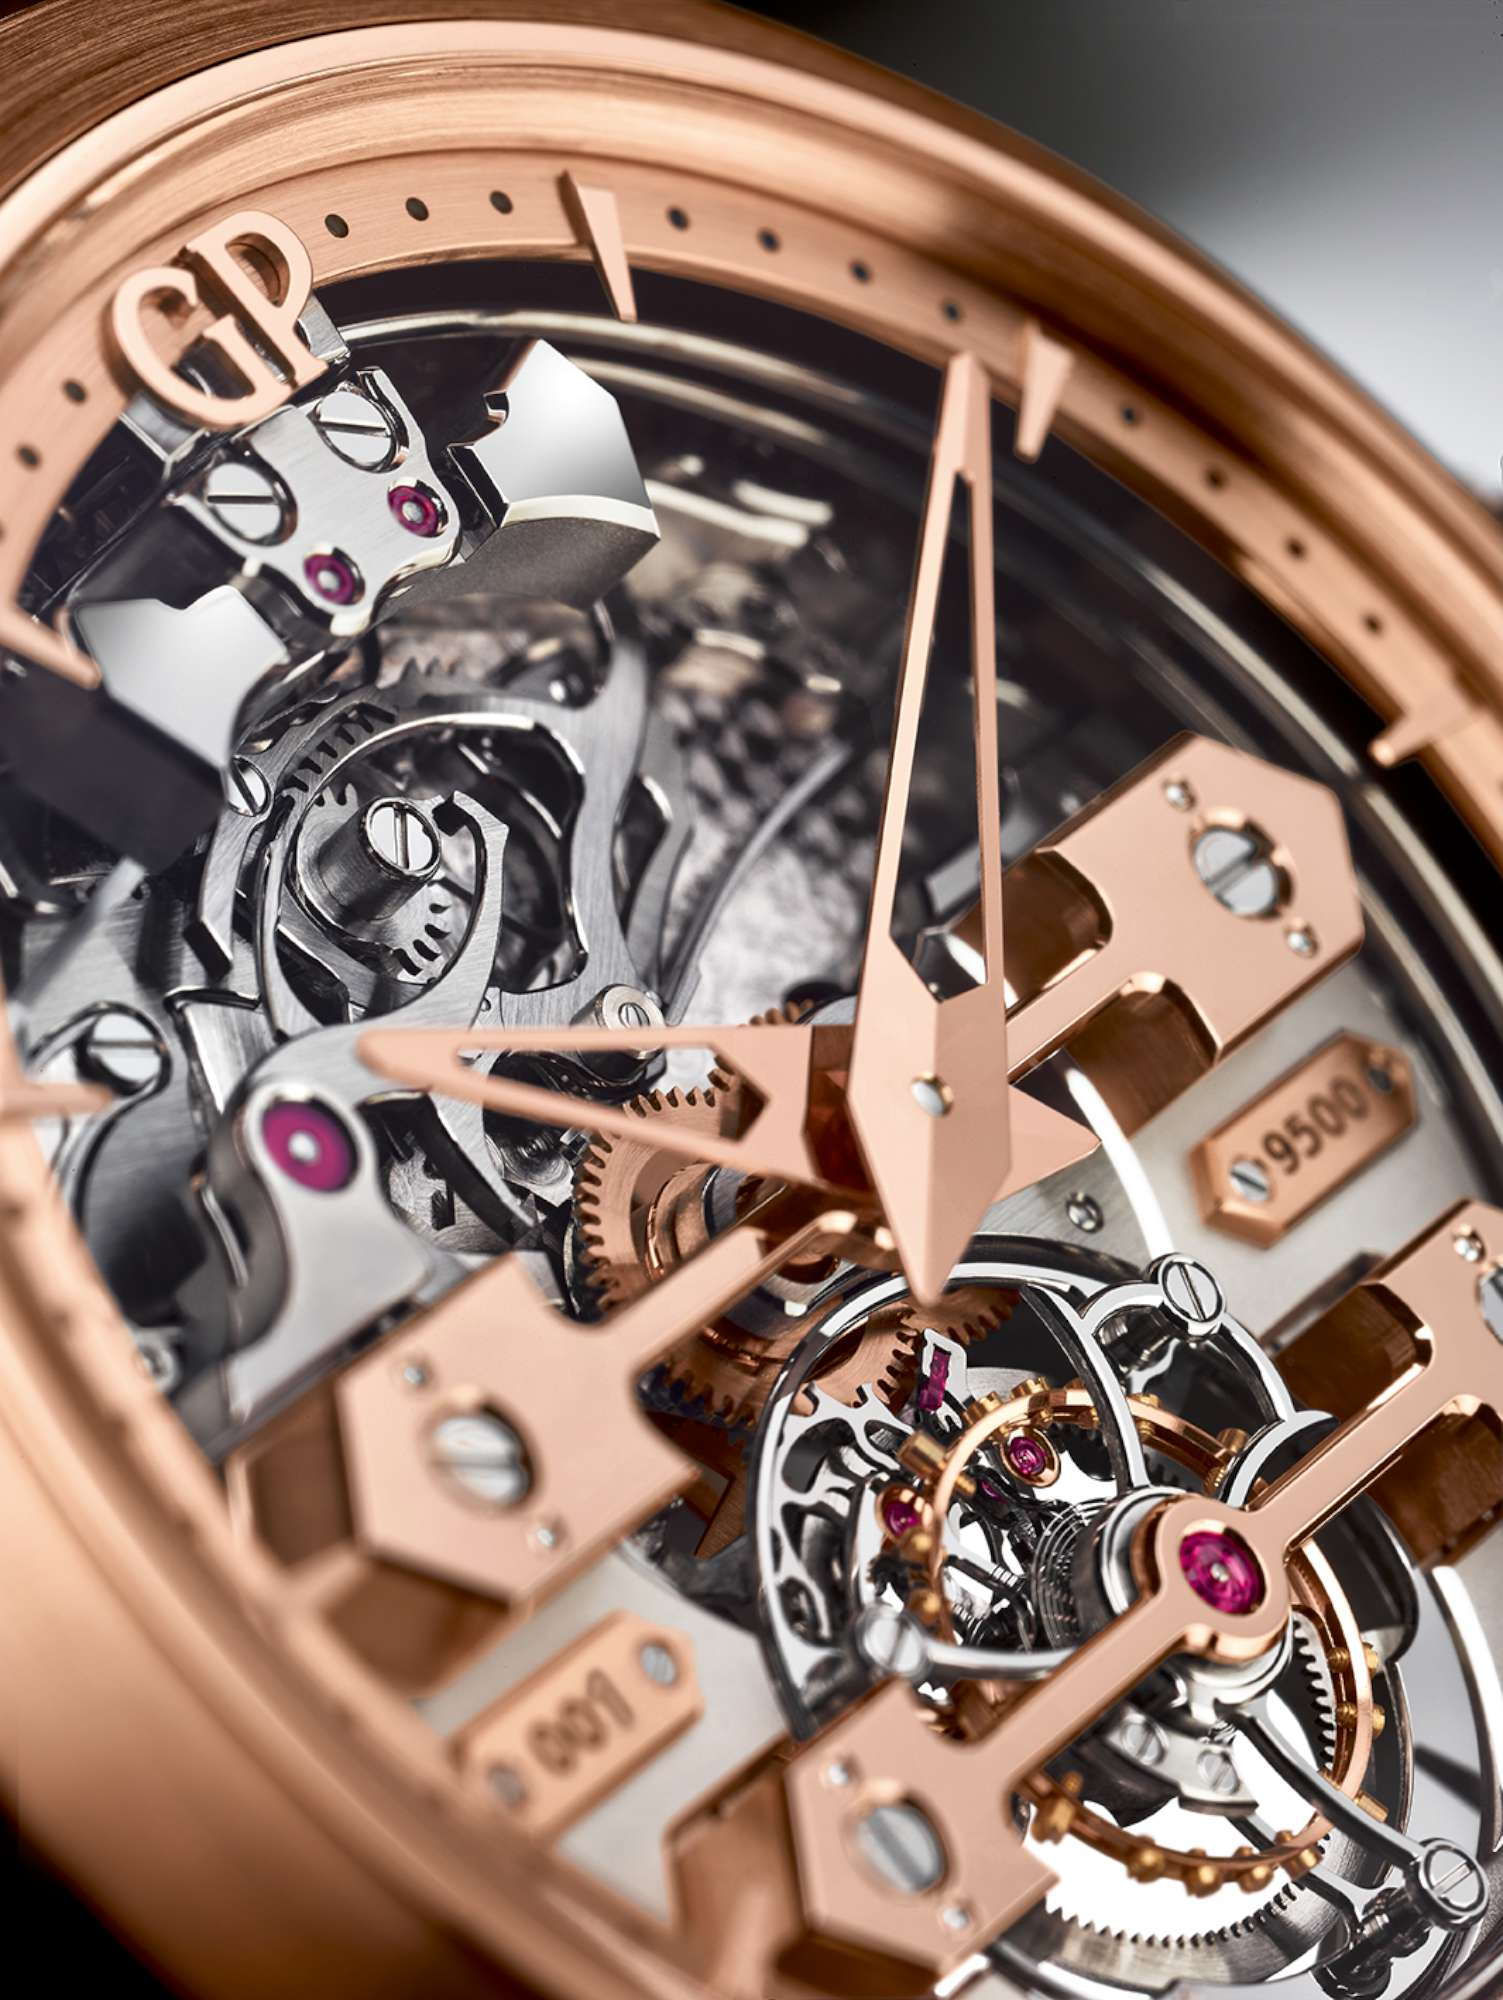 GP_LD_Tourbillon Minute Repeater with Gold Bridges_CLUP2-2000